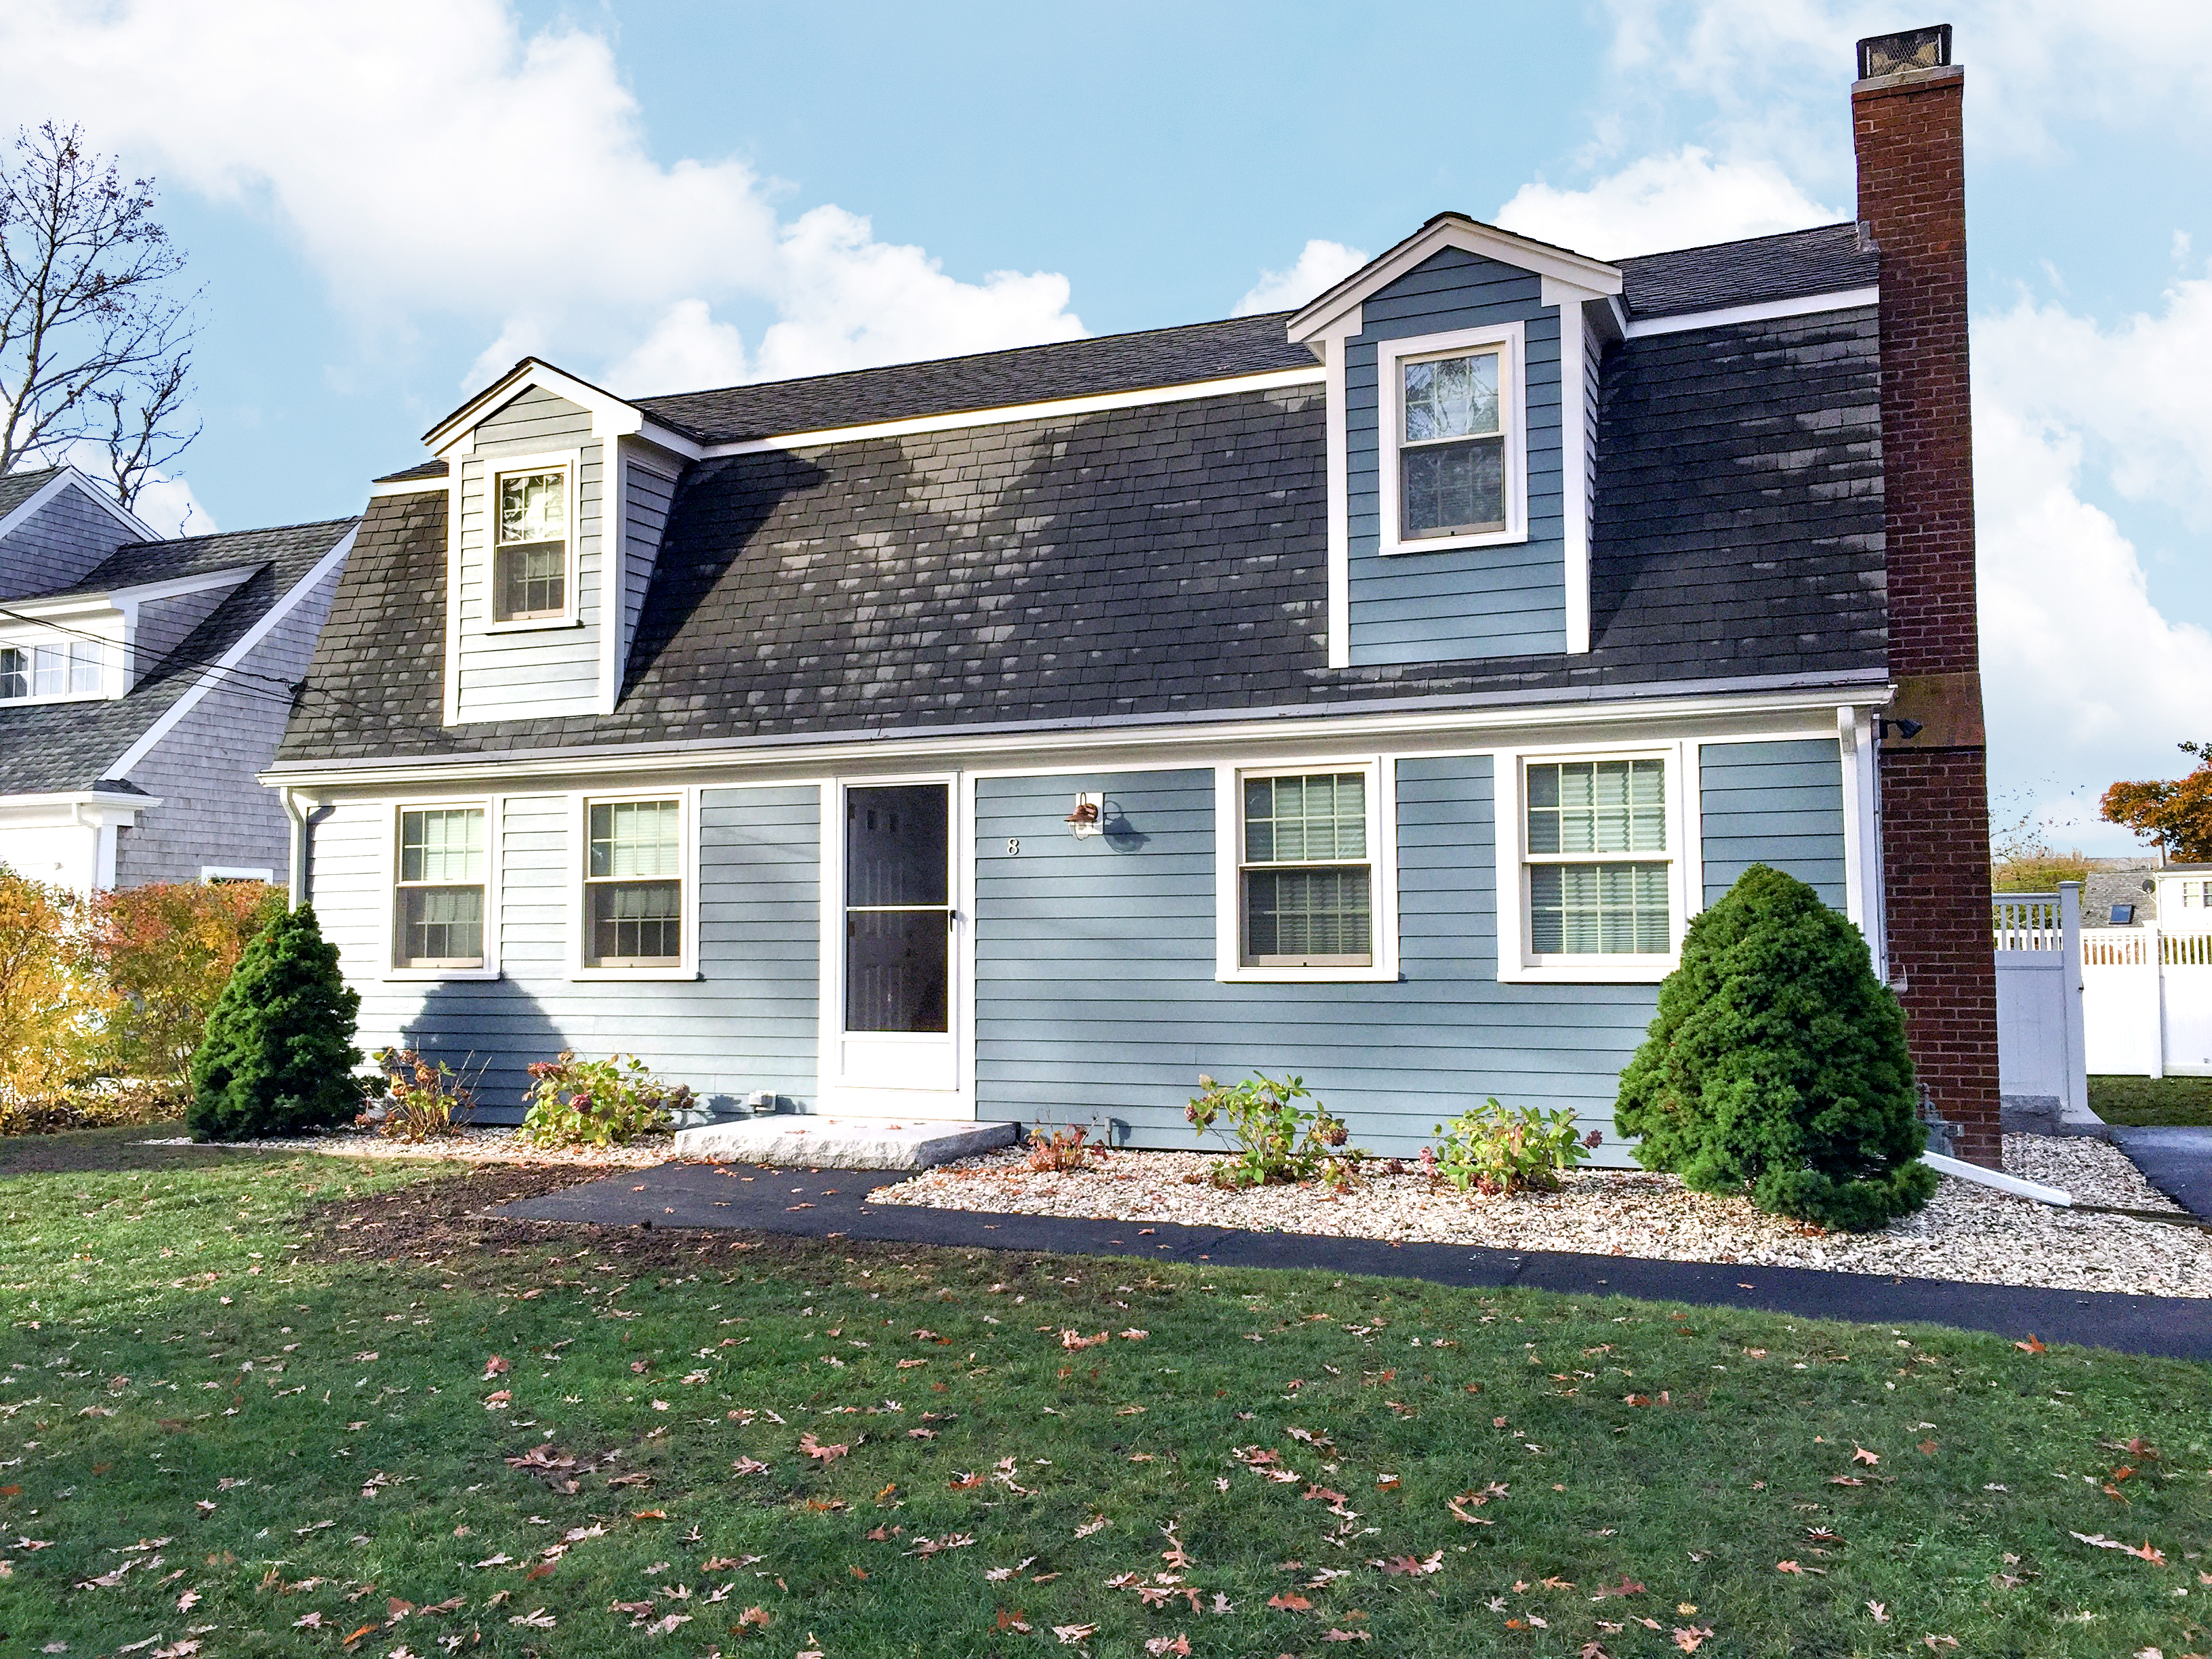 Falmouth MA Vacation Rental Welcome to Falmouth!